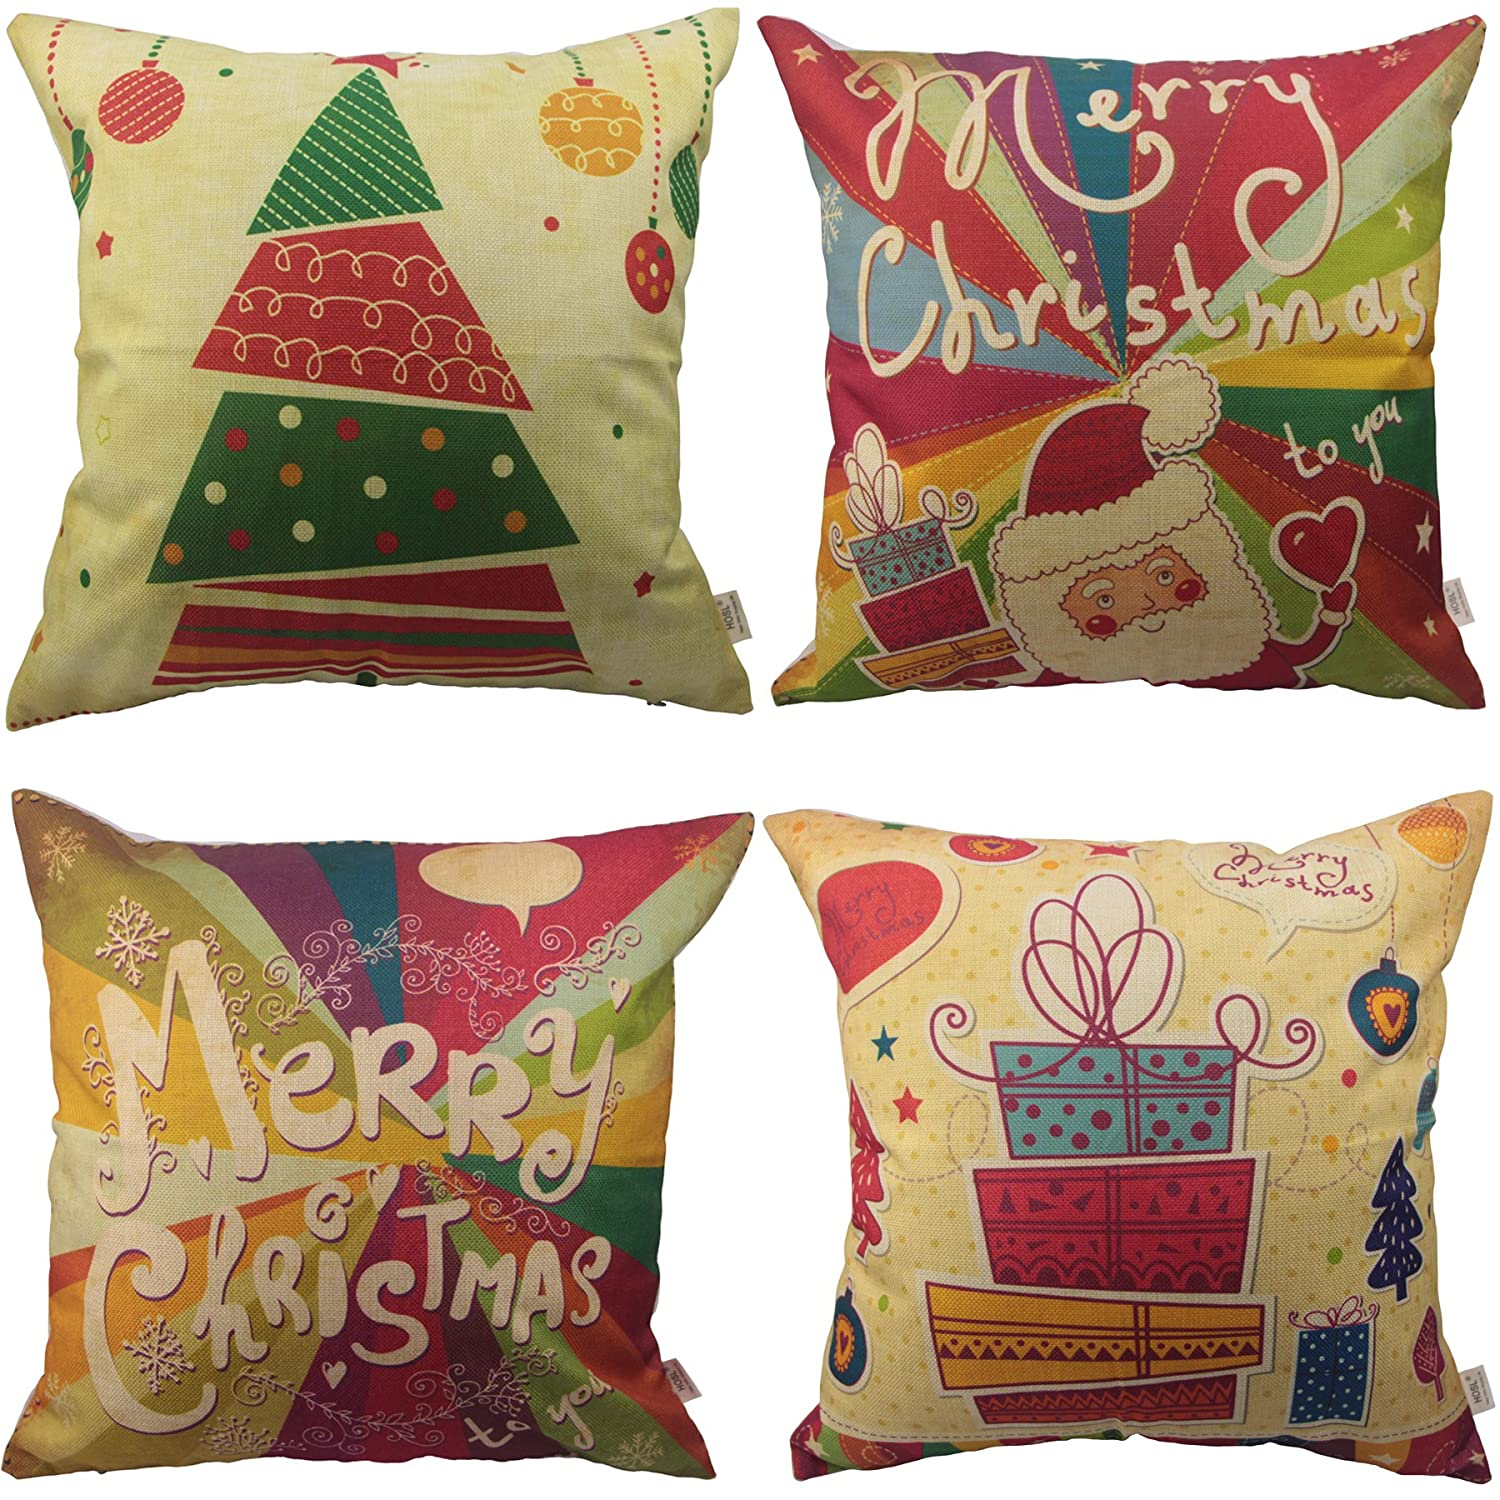 Merry Christmas Throw Pillow C...